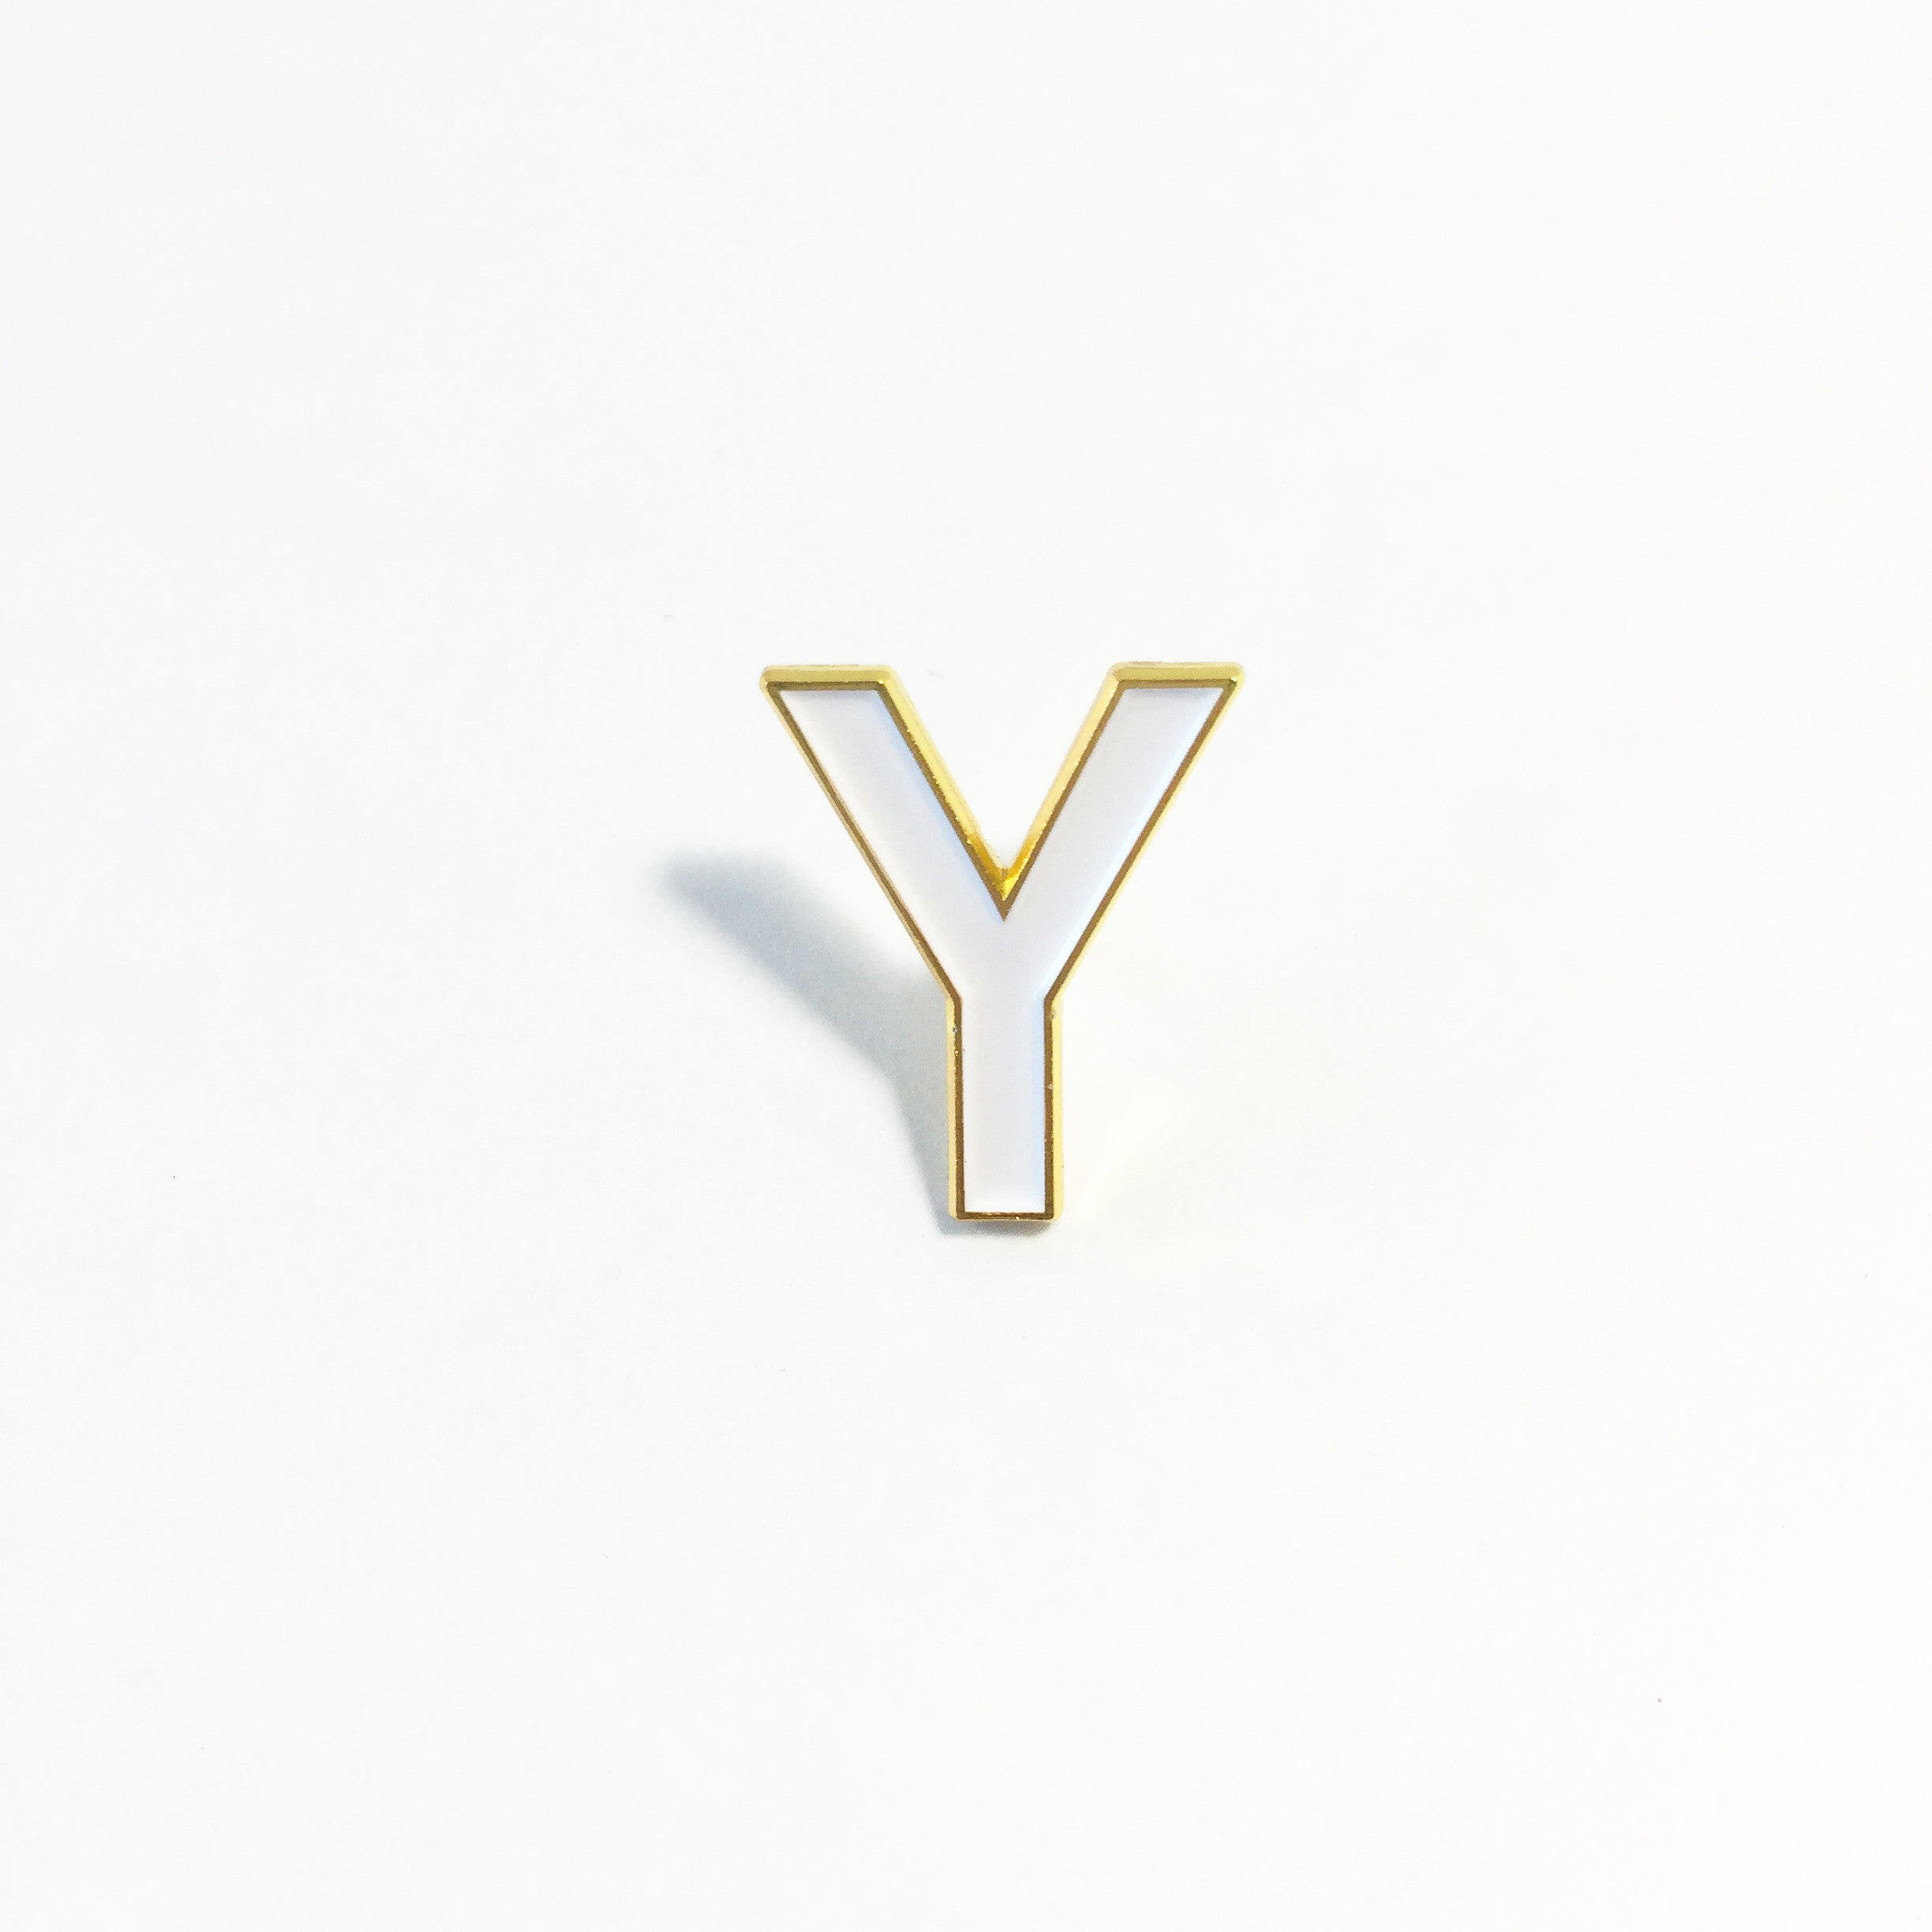 LETTER Y pin